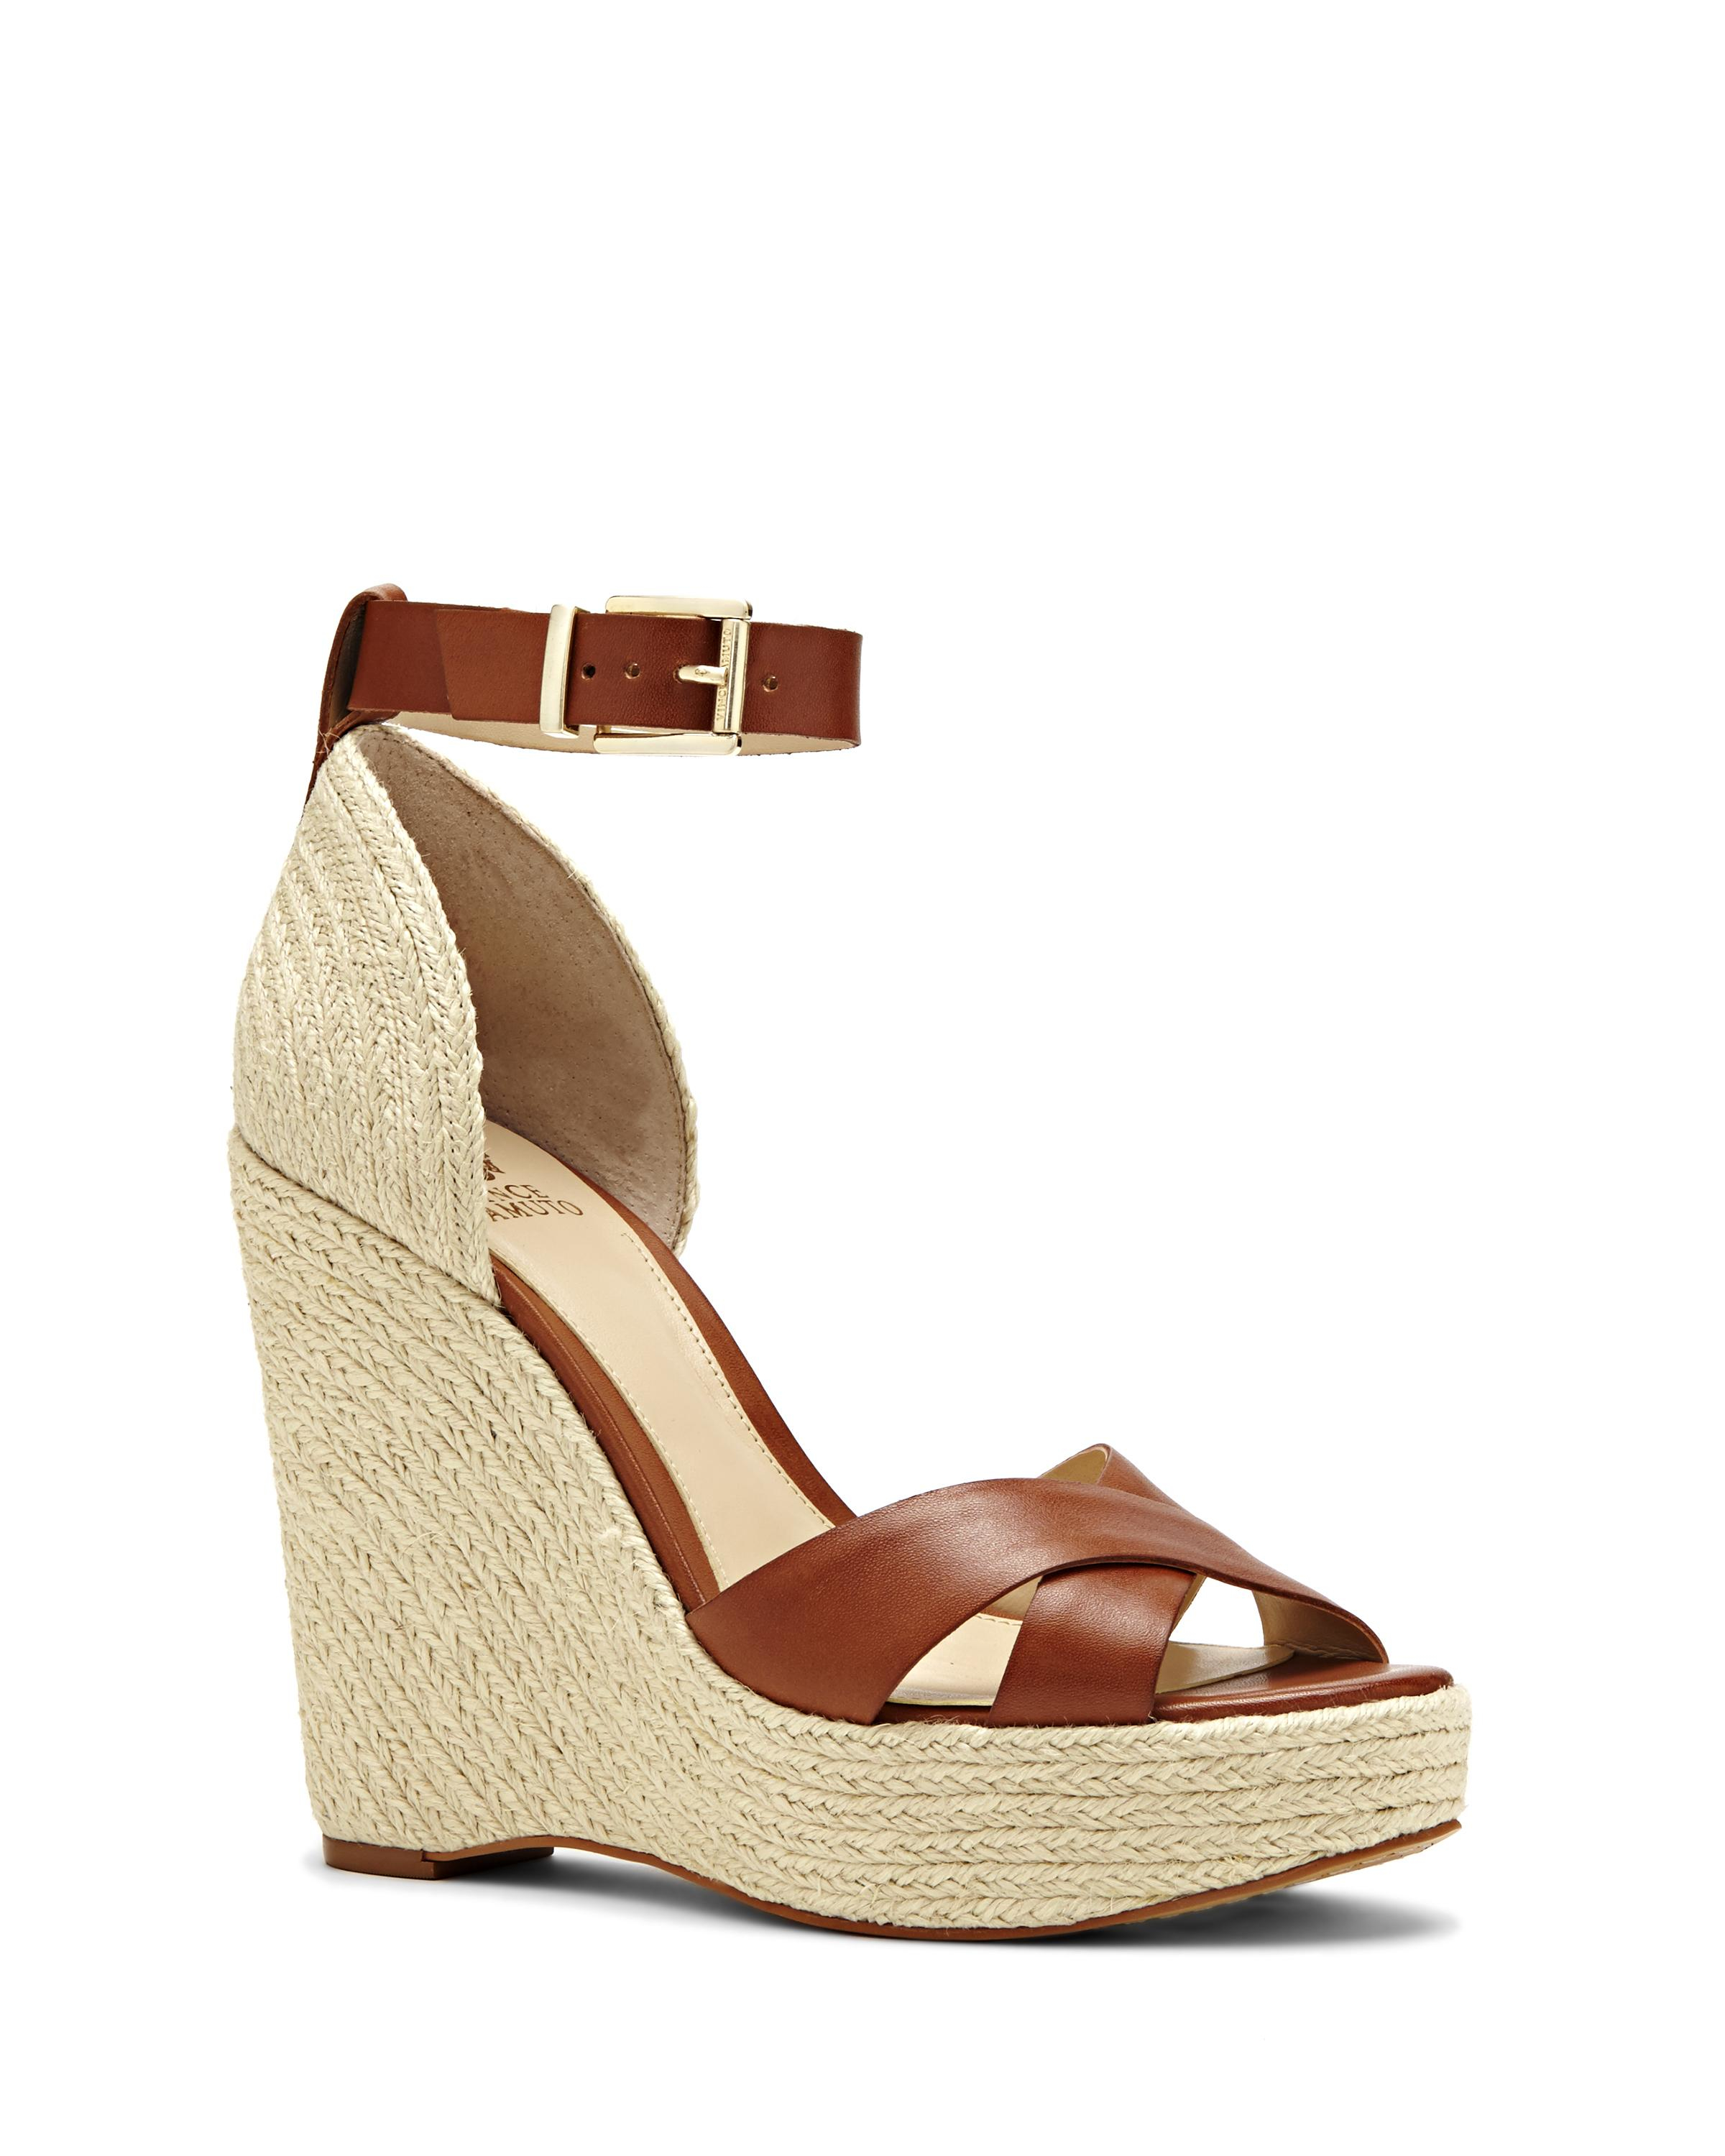 29bb8ce701e Lyst - Vince Camuto Maurita – Espadrille Wedge Sandal in Brown